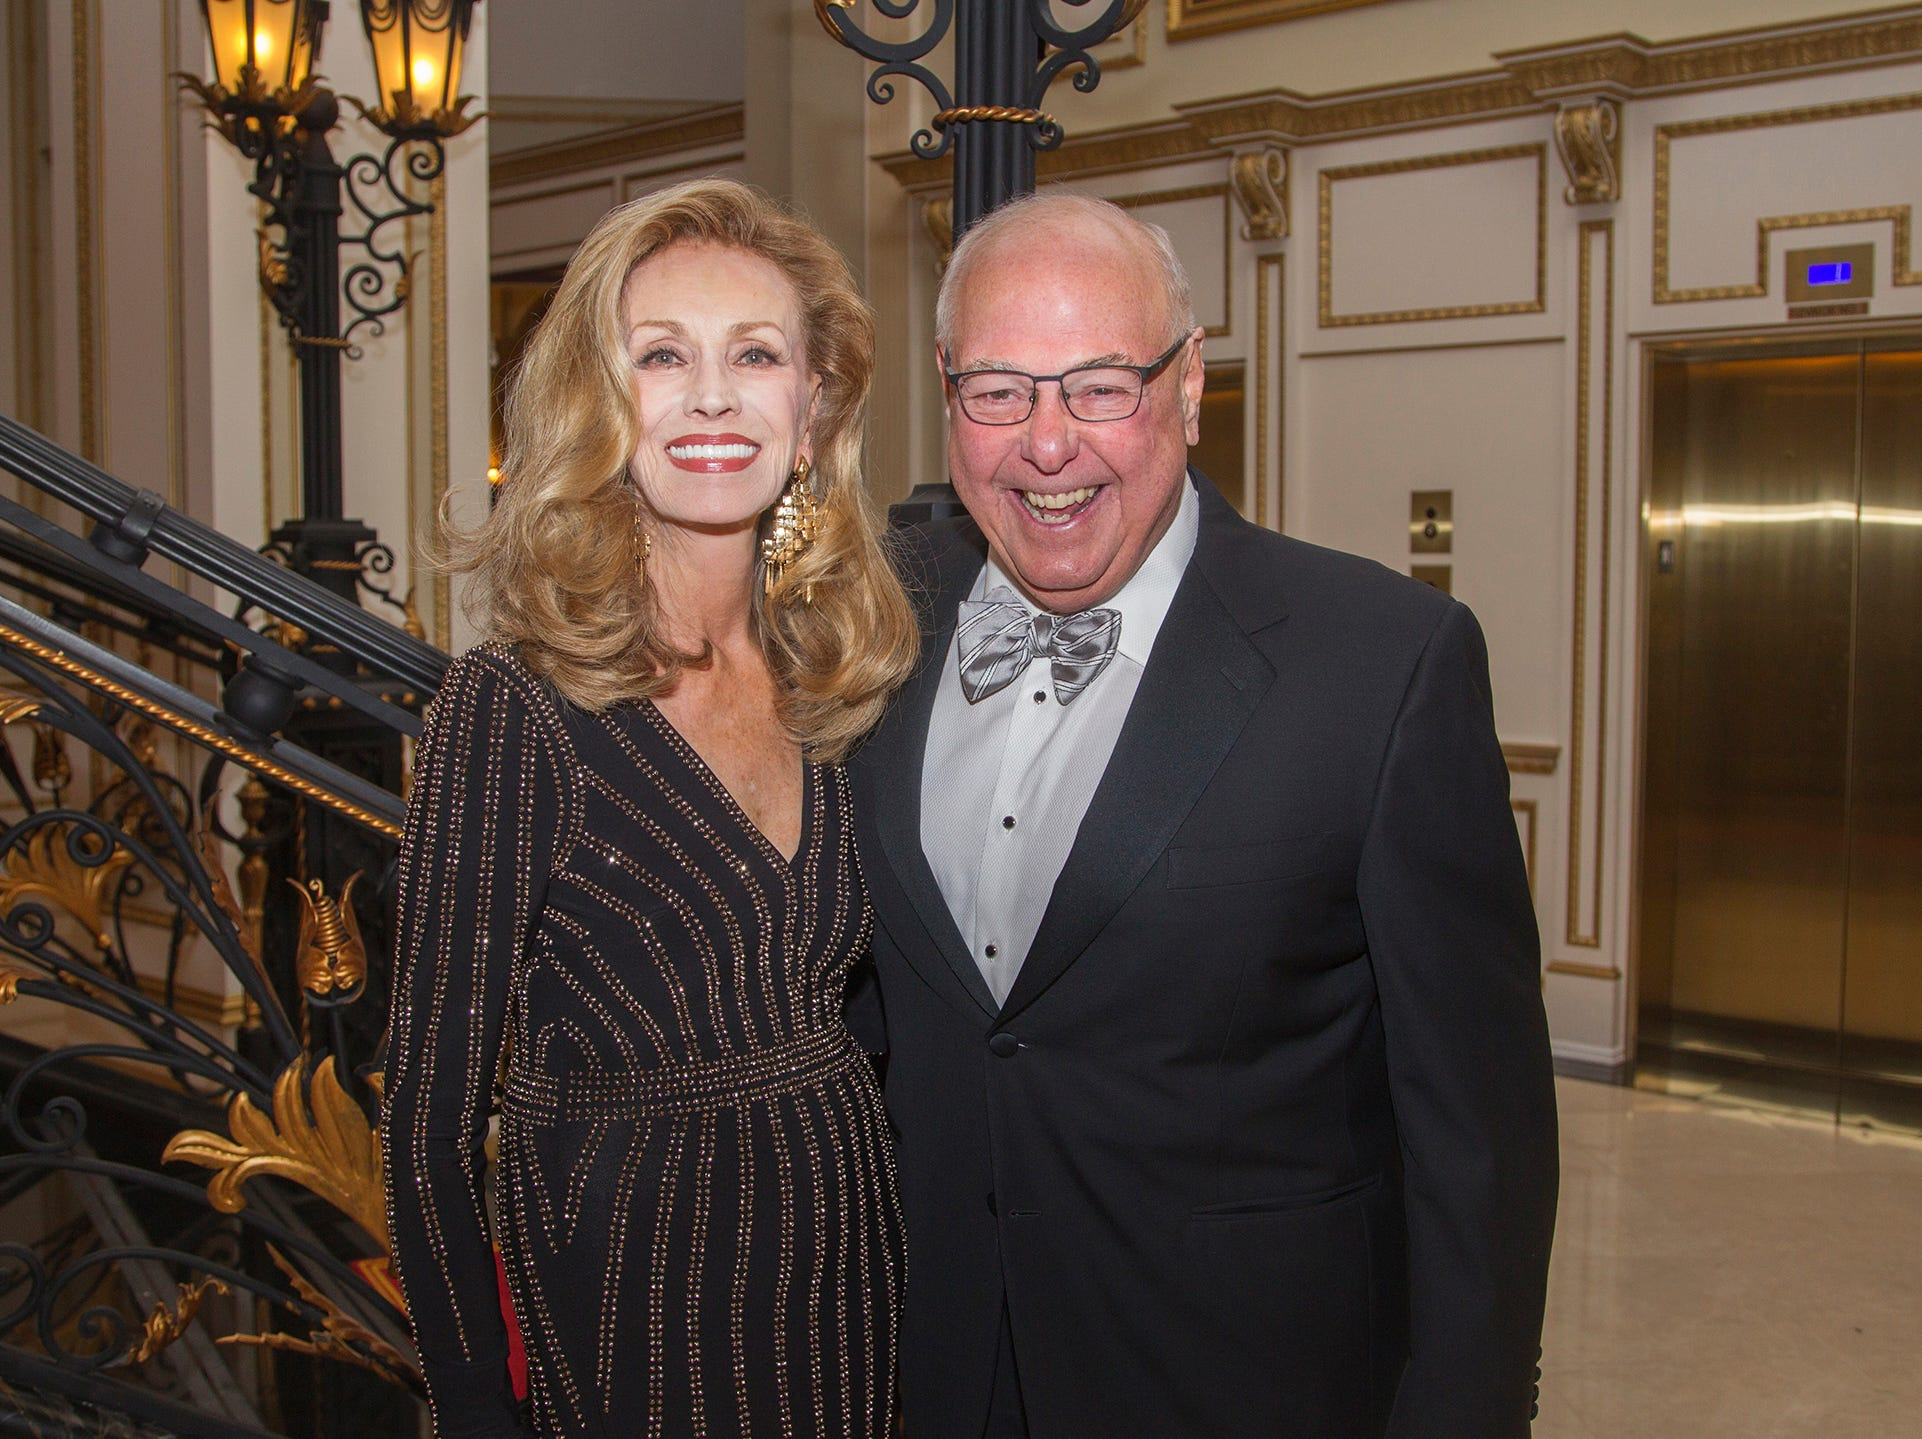 Diane  Frankel-Hughes, Frank Huges. The 72nd Annual Valley Ball gala at The Legacy Castle in Pompton Plains. 11/16/2018